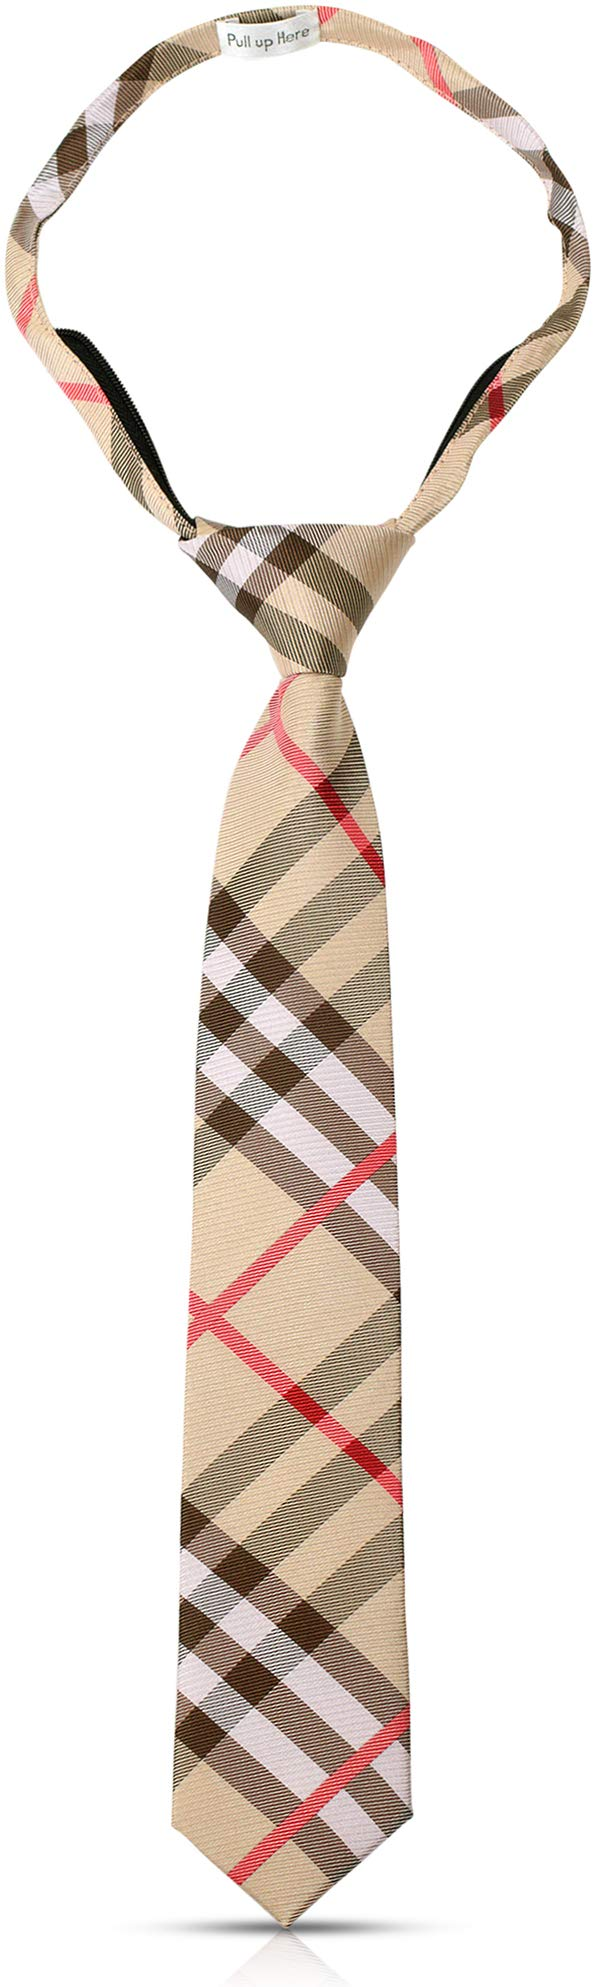 Handmade 14'' Pre Tied Plaid Zipper Brown Tan Ties For Boys Woven Boys Tie: For Kids Wedding Graduation by LUTHER PIKE SEATTLE